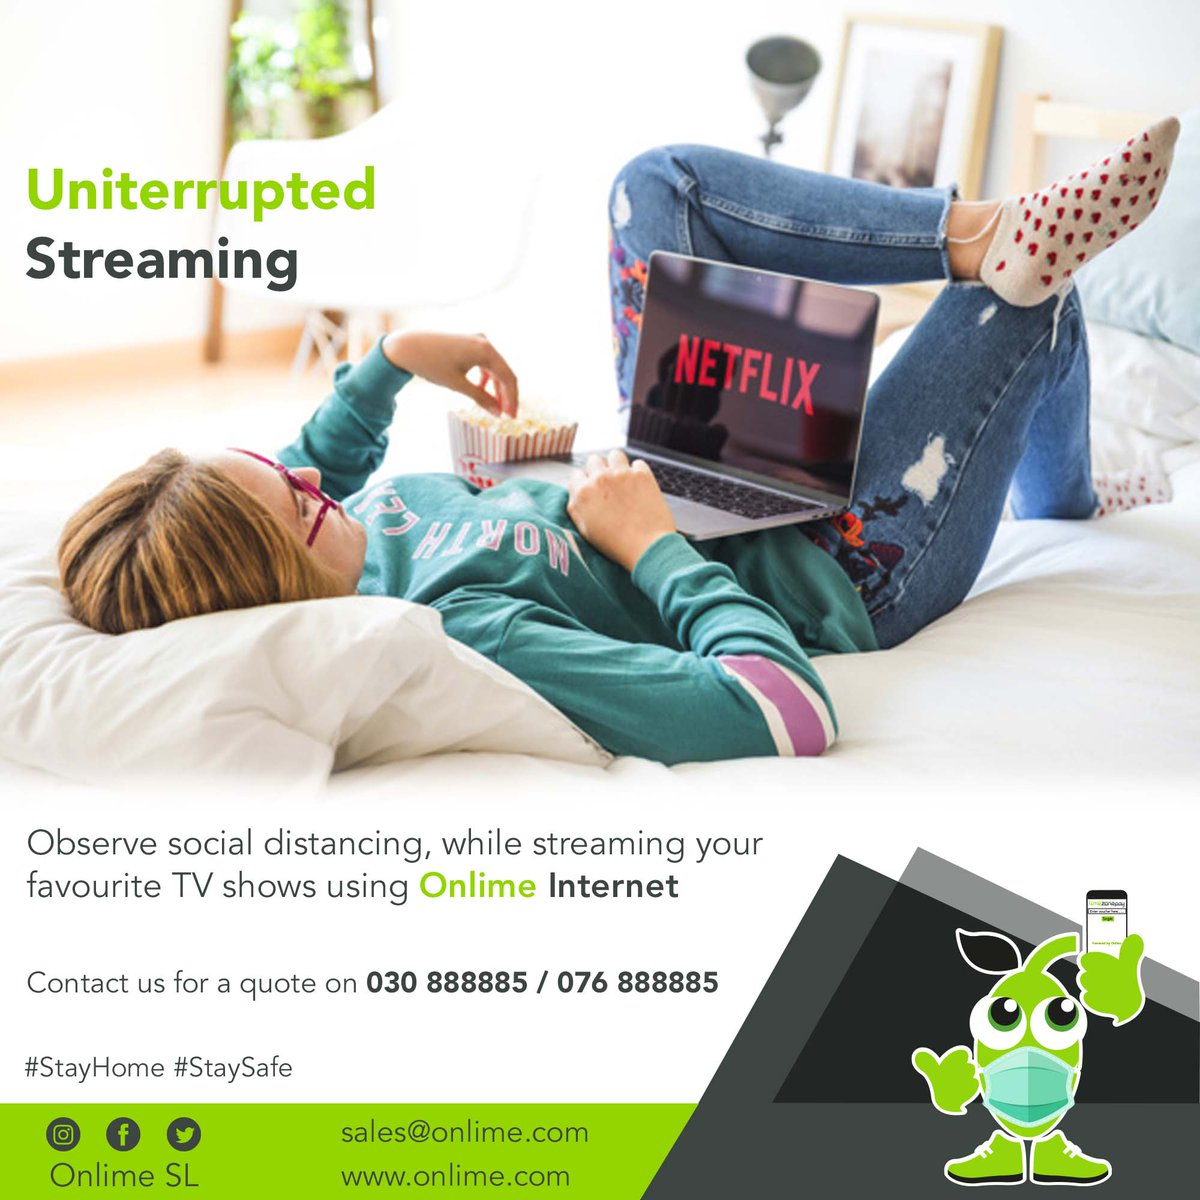 Time waits for no one and neither should you! Switch to #OnlimeInternet today and experience uninterrupted streaming! Call 076 888885 / 030 888885 for more info. #SierraLeone #Freetown #SaloneTwitter https://t.co/2lbgIuKDVM